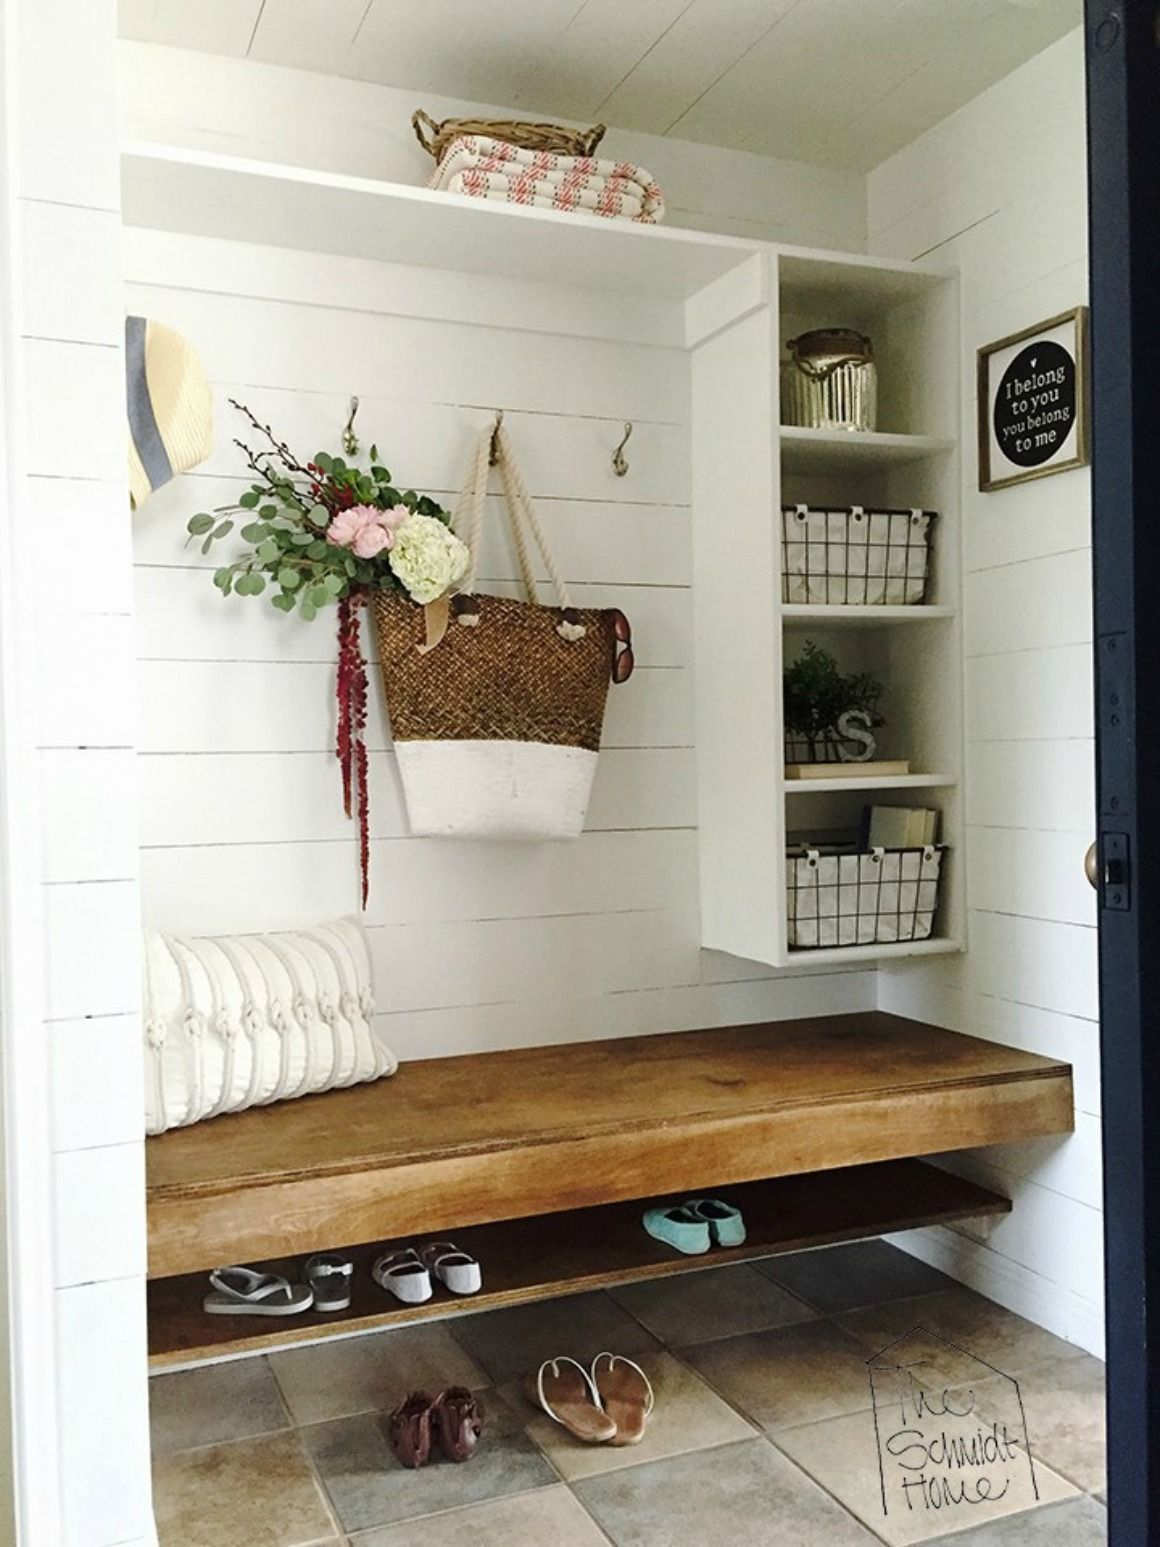 Mudroom inspiration and ideas lowes also top designing my home hogar rh ar pinterest